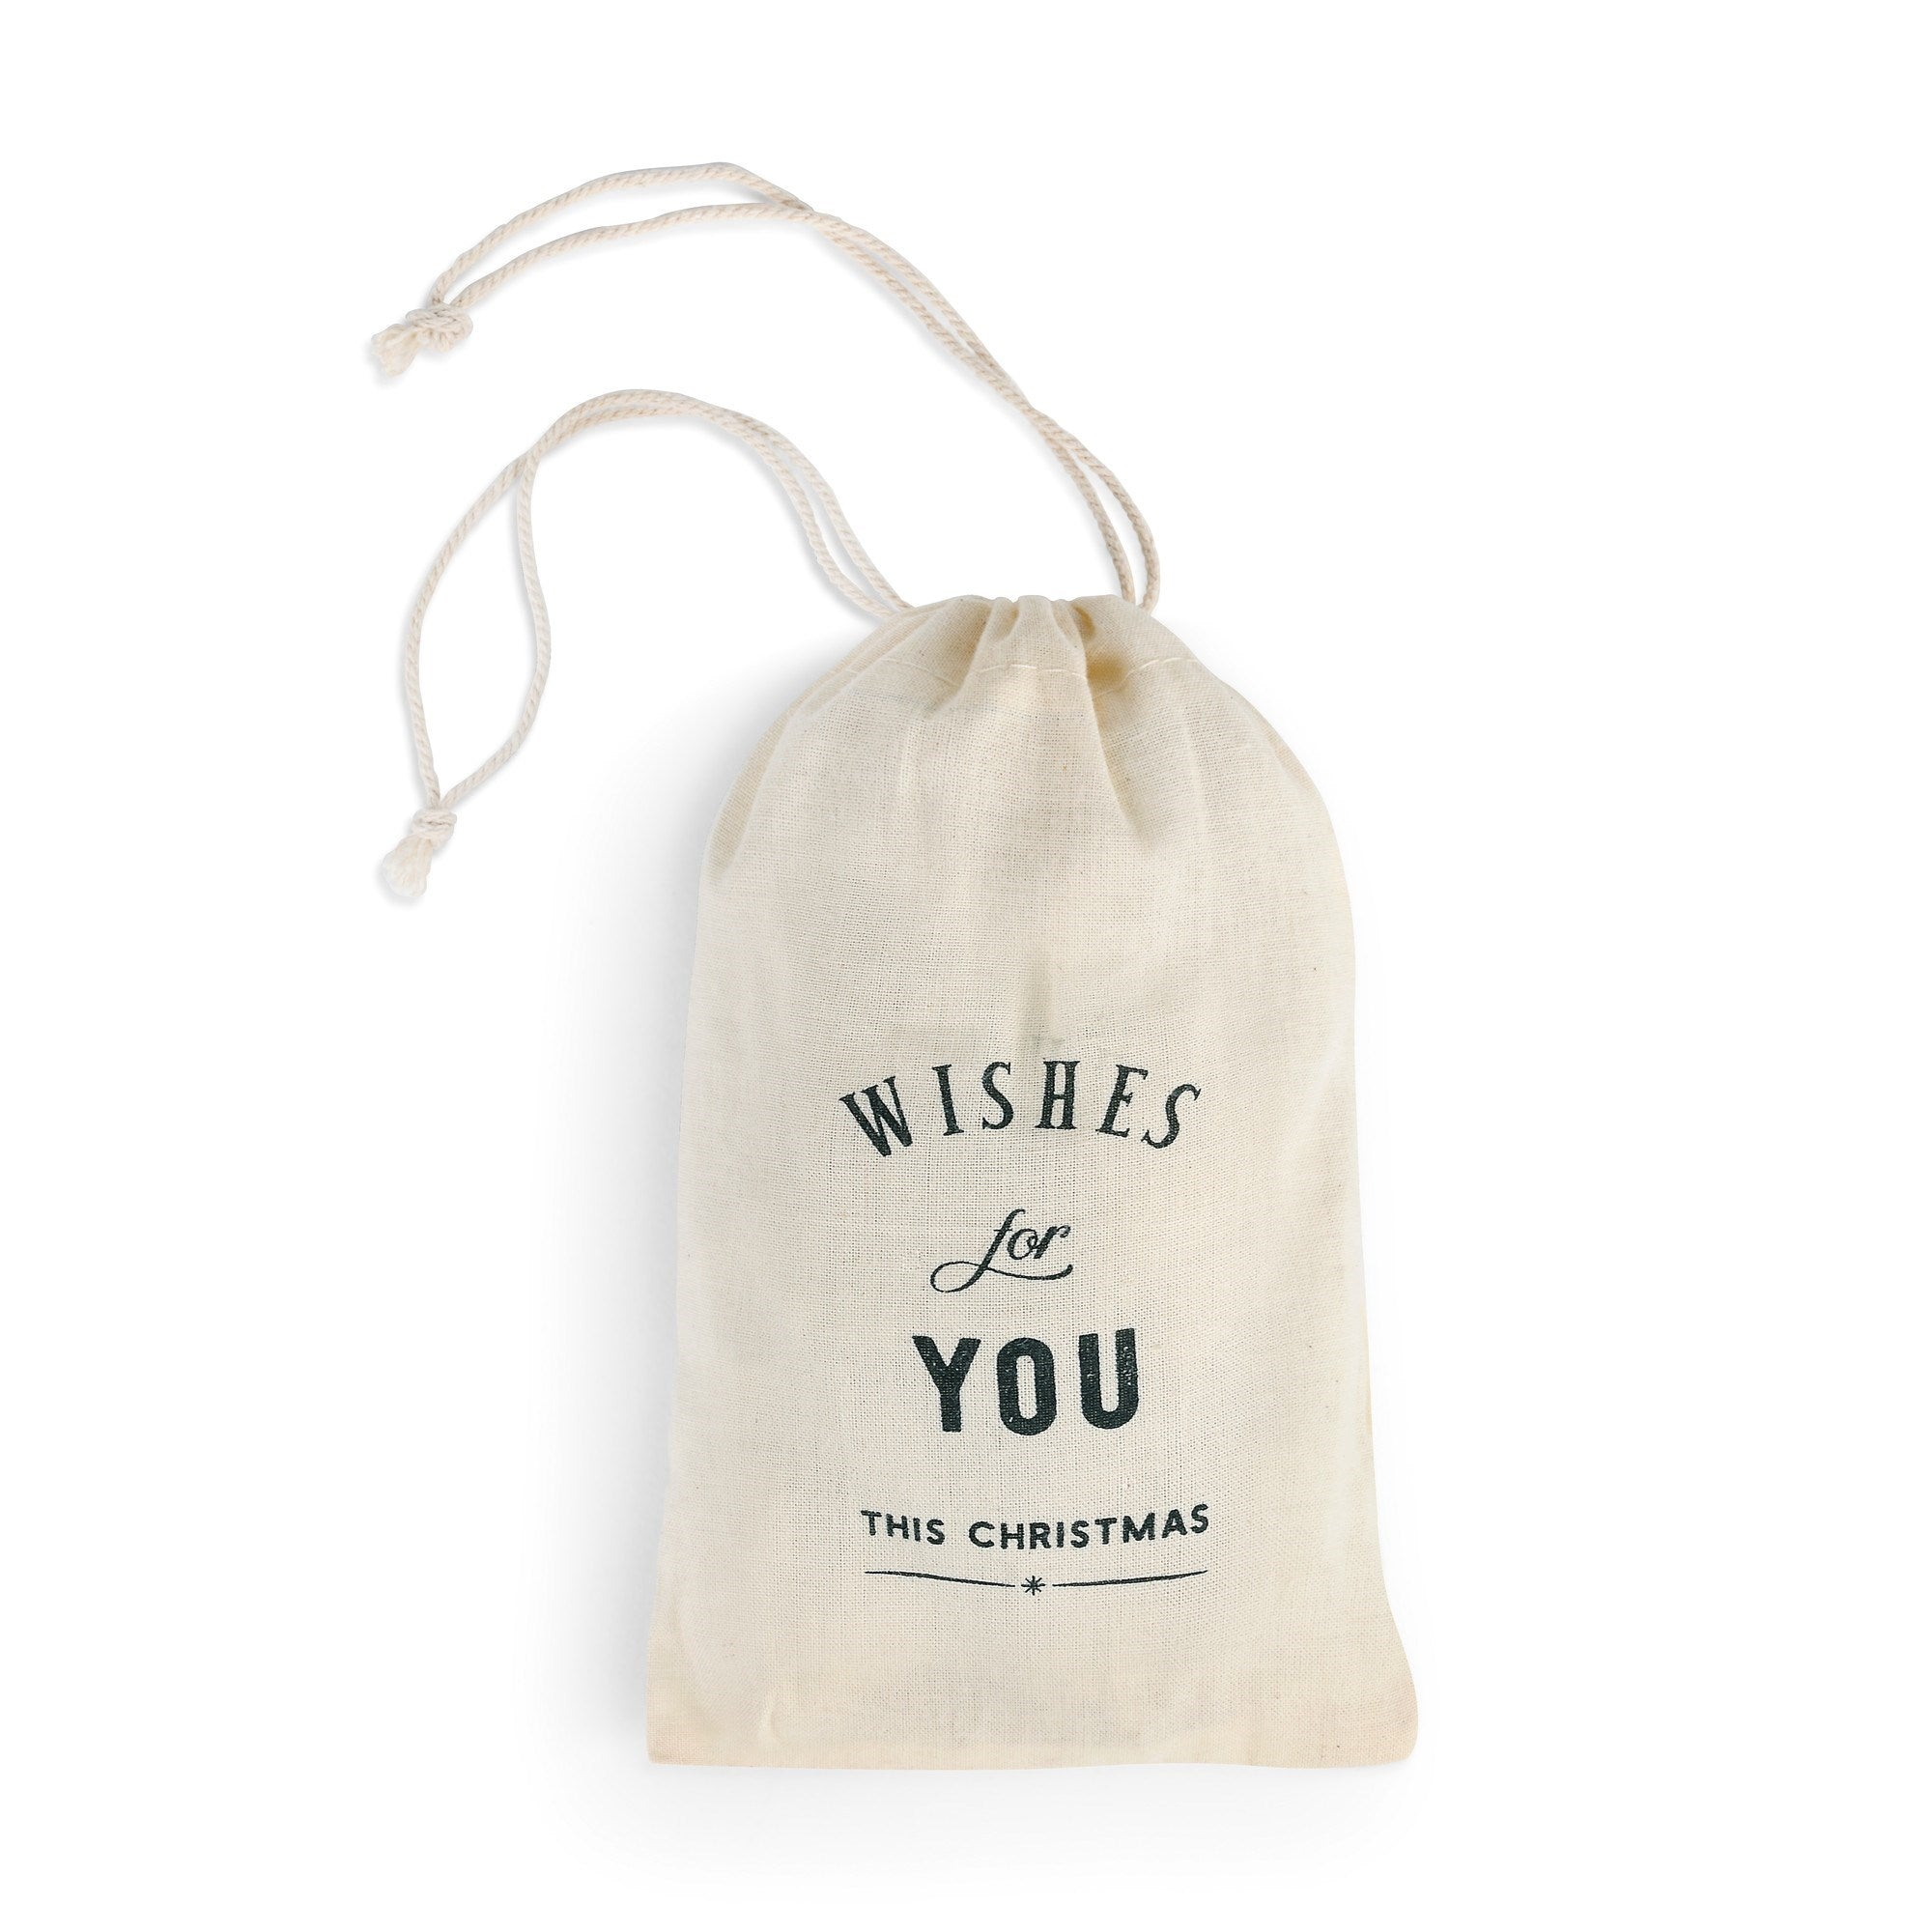 Wishes For You this Christmas Porcelain Ornament Bag | Putti Christmas